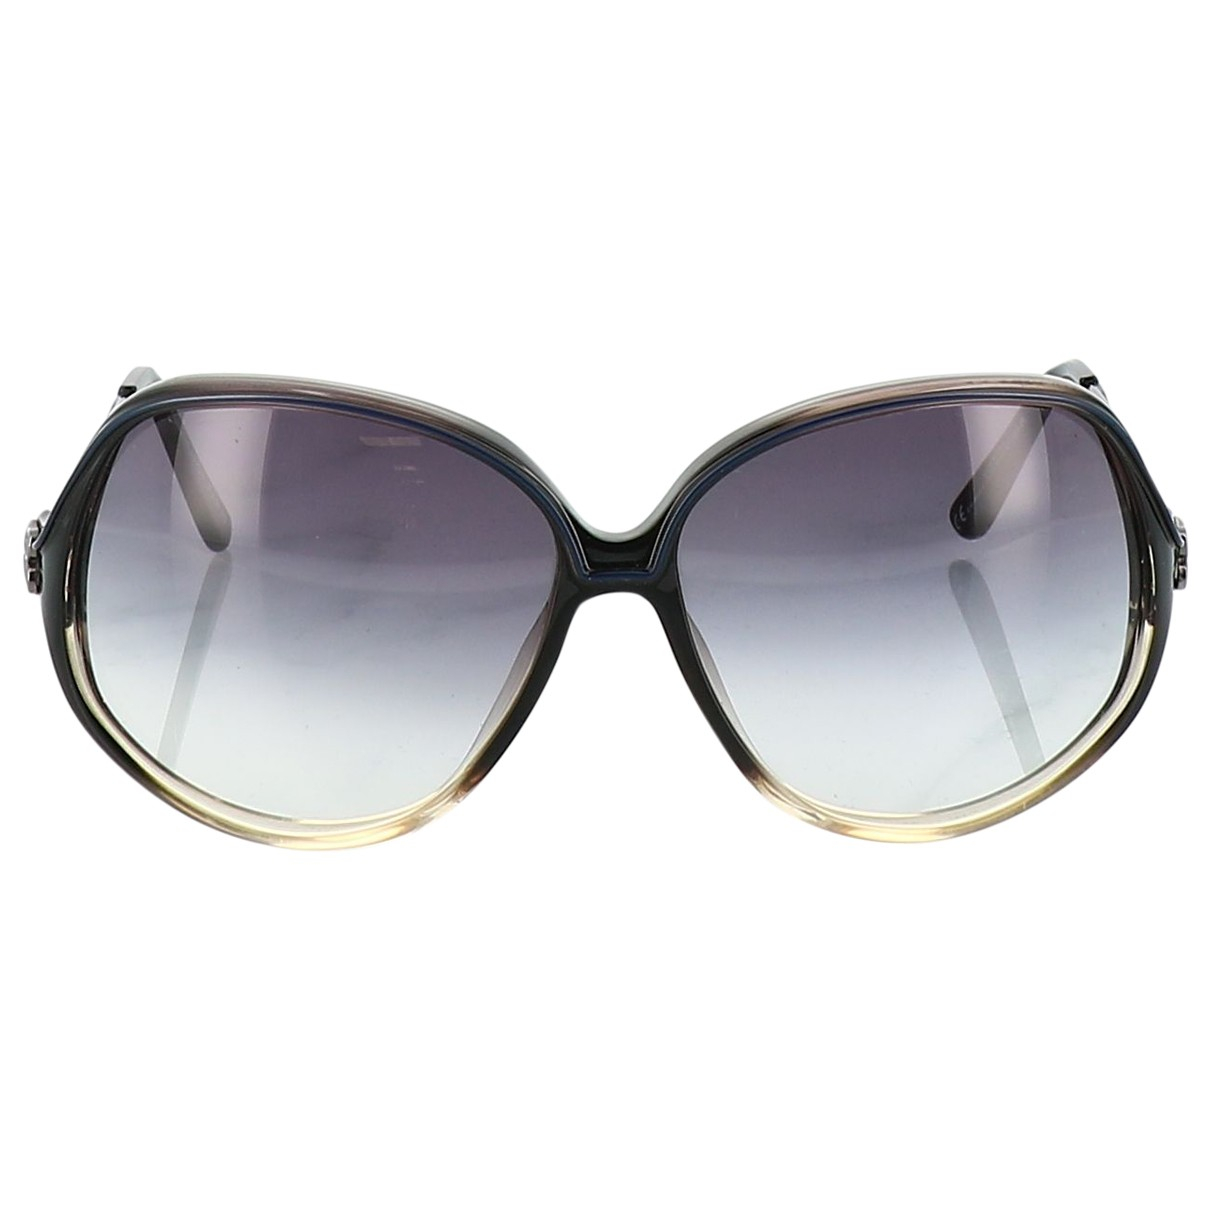 Balenciaga \N Black Sunglasses for Women \N